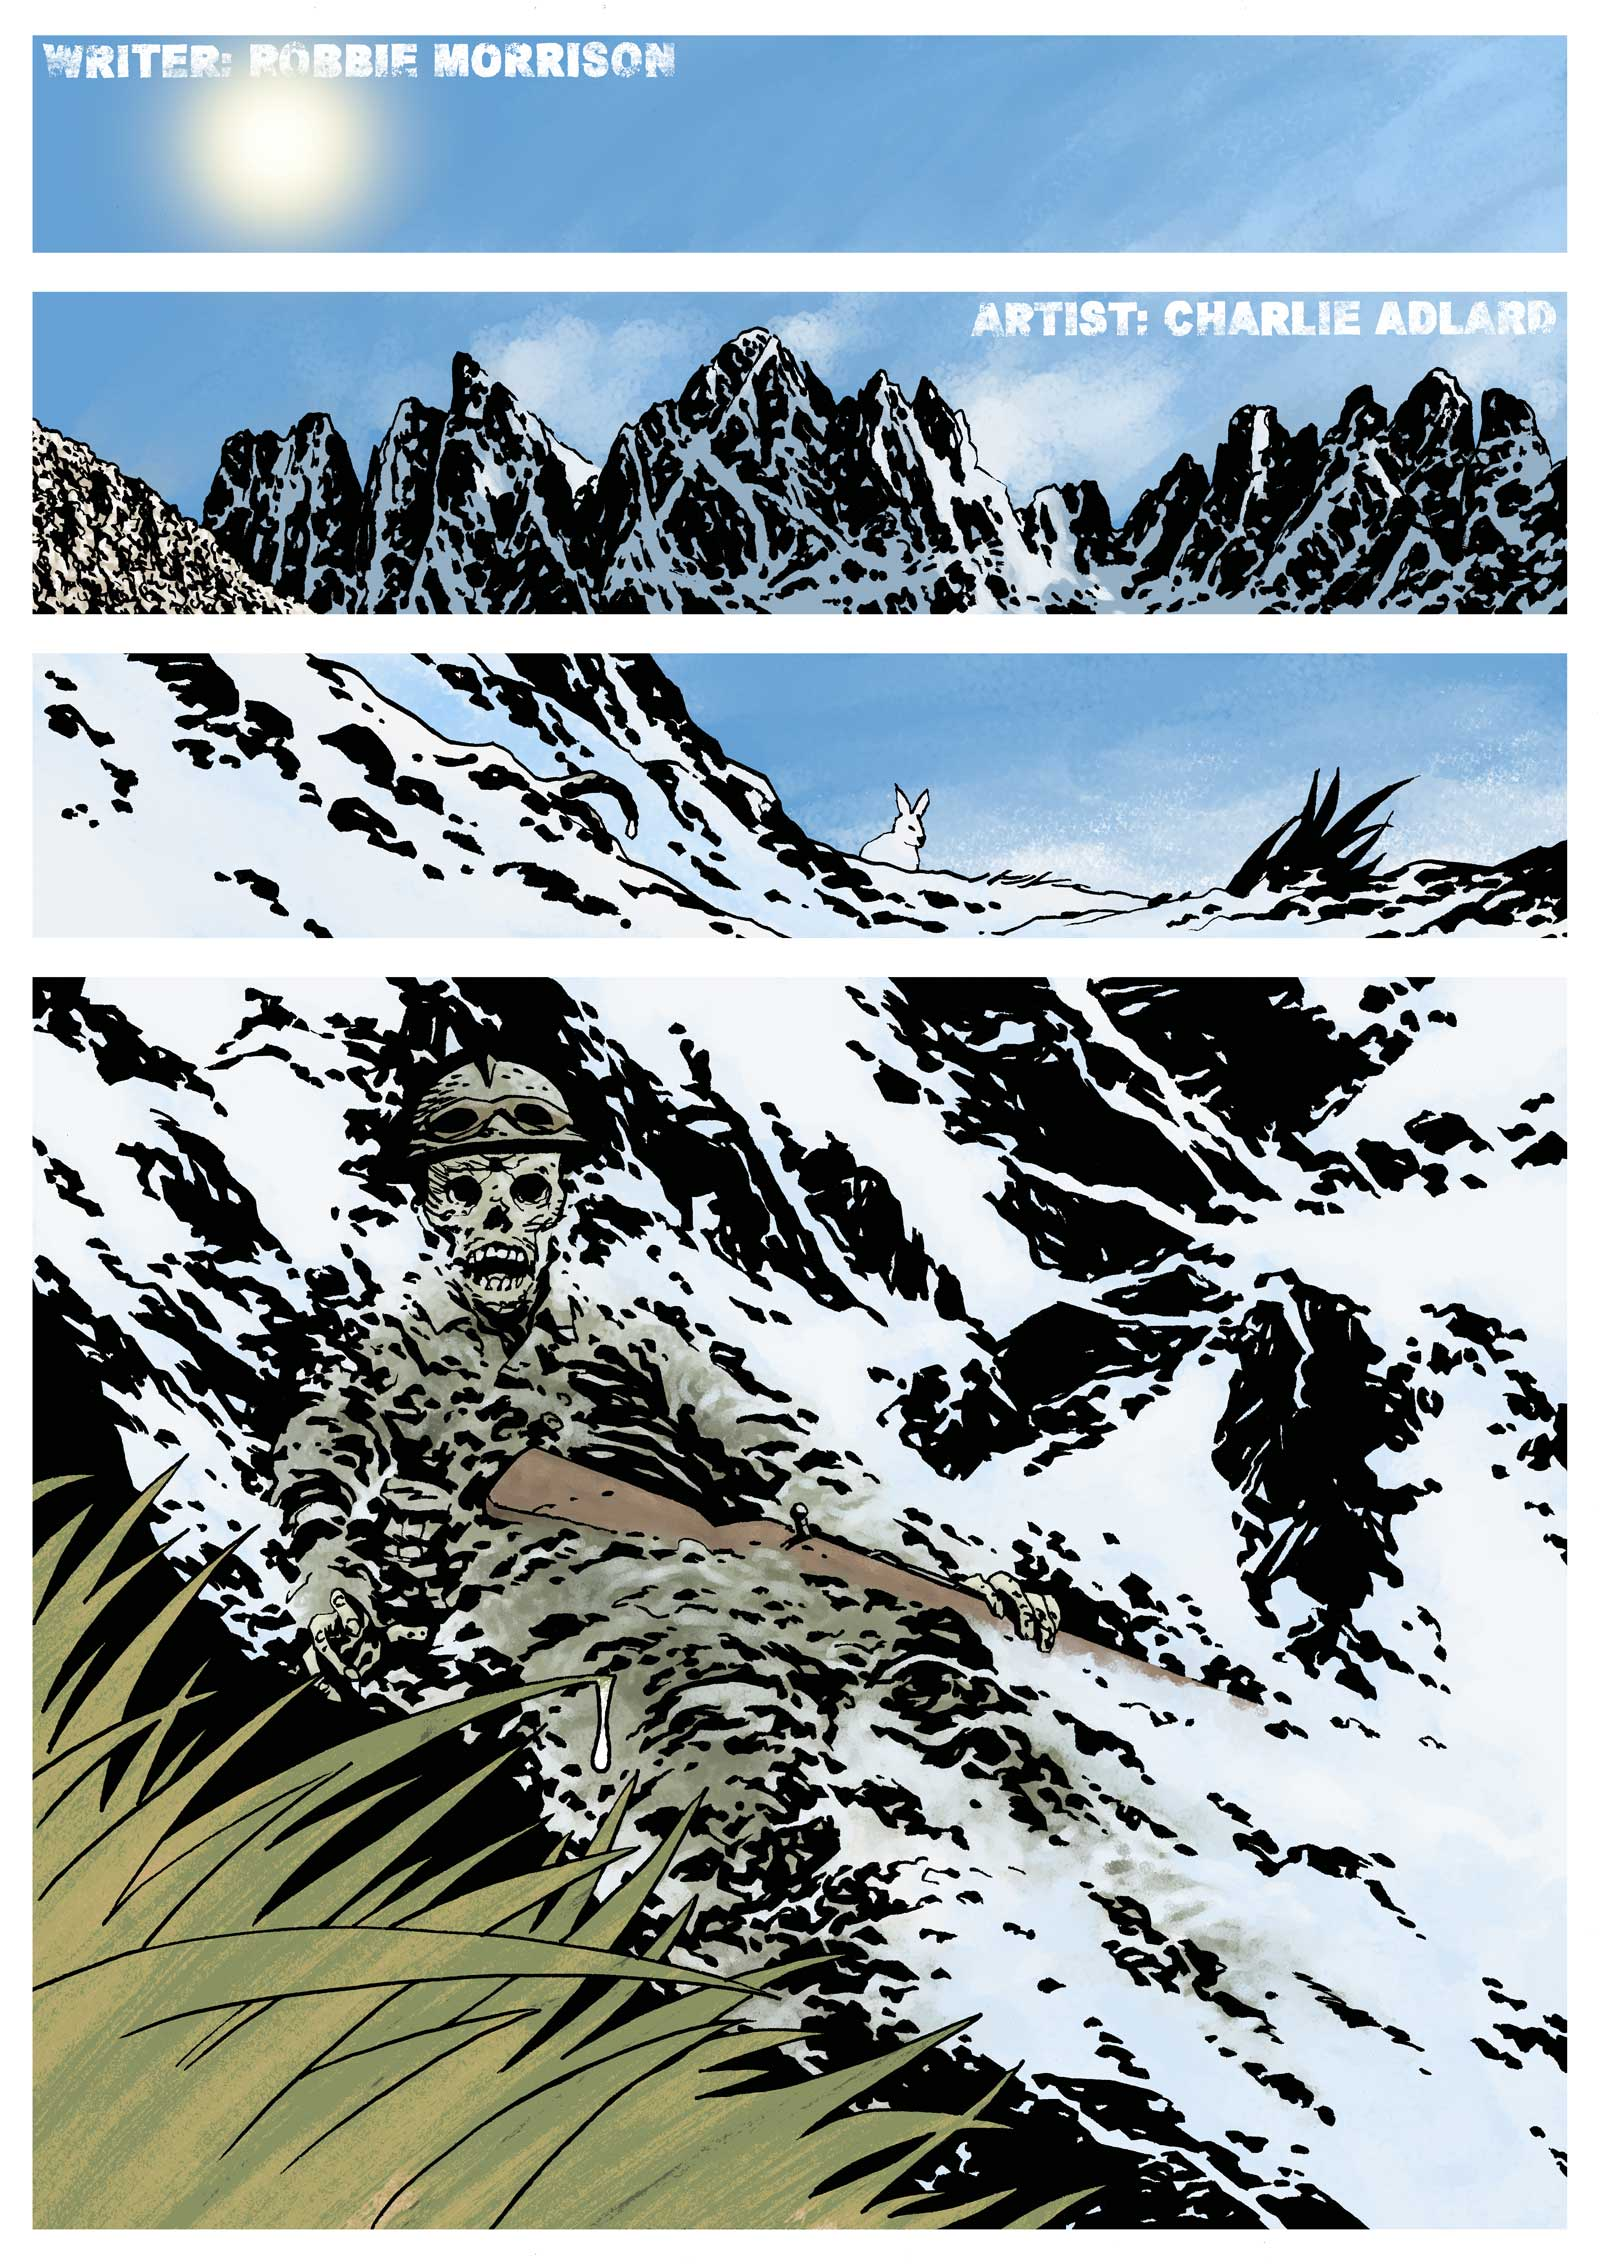 """Traces of the Great War - The opening page of """"Without a Trace"""" by Robbie Morrison & Charlie Adlard"""